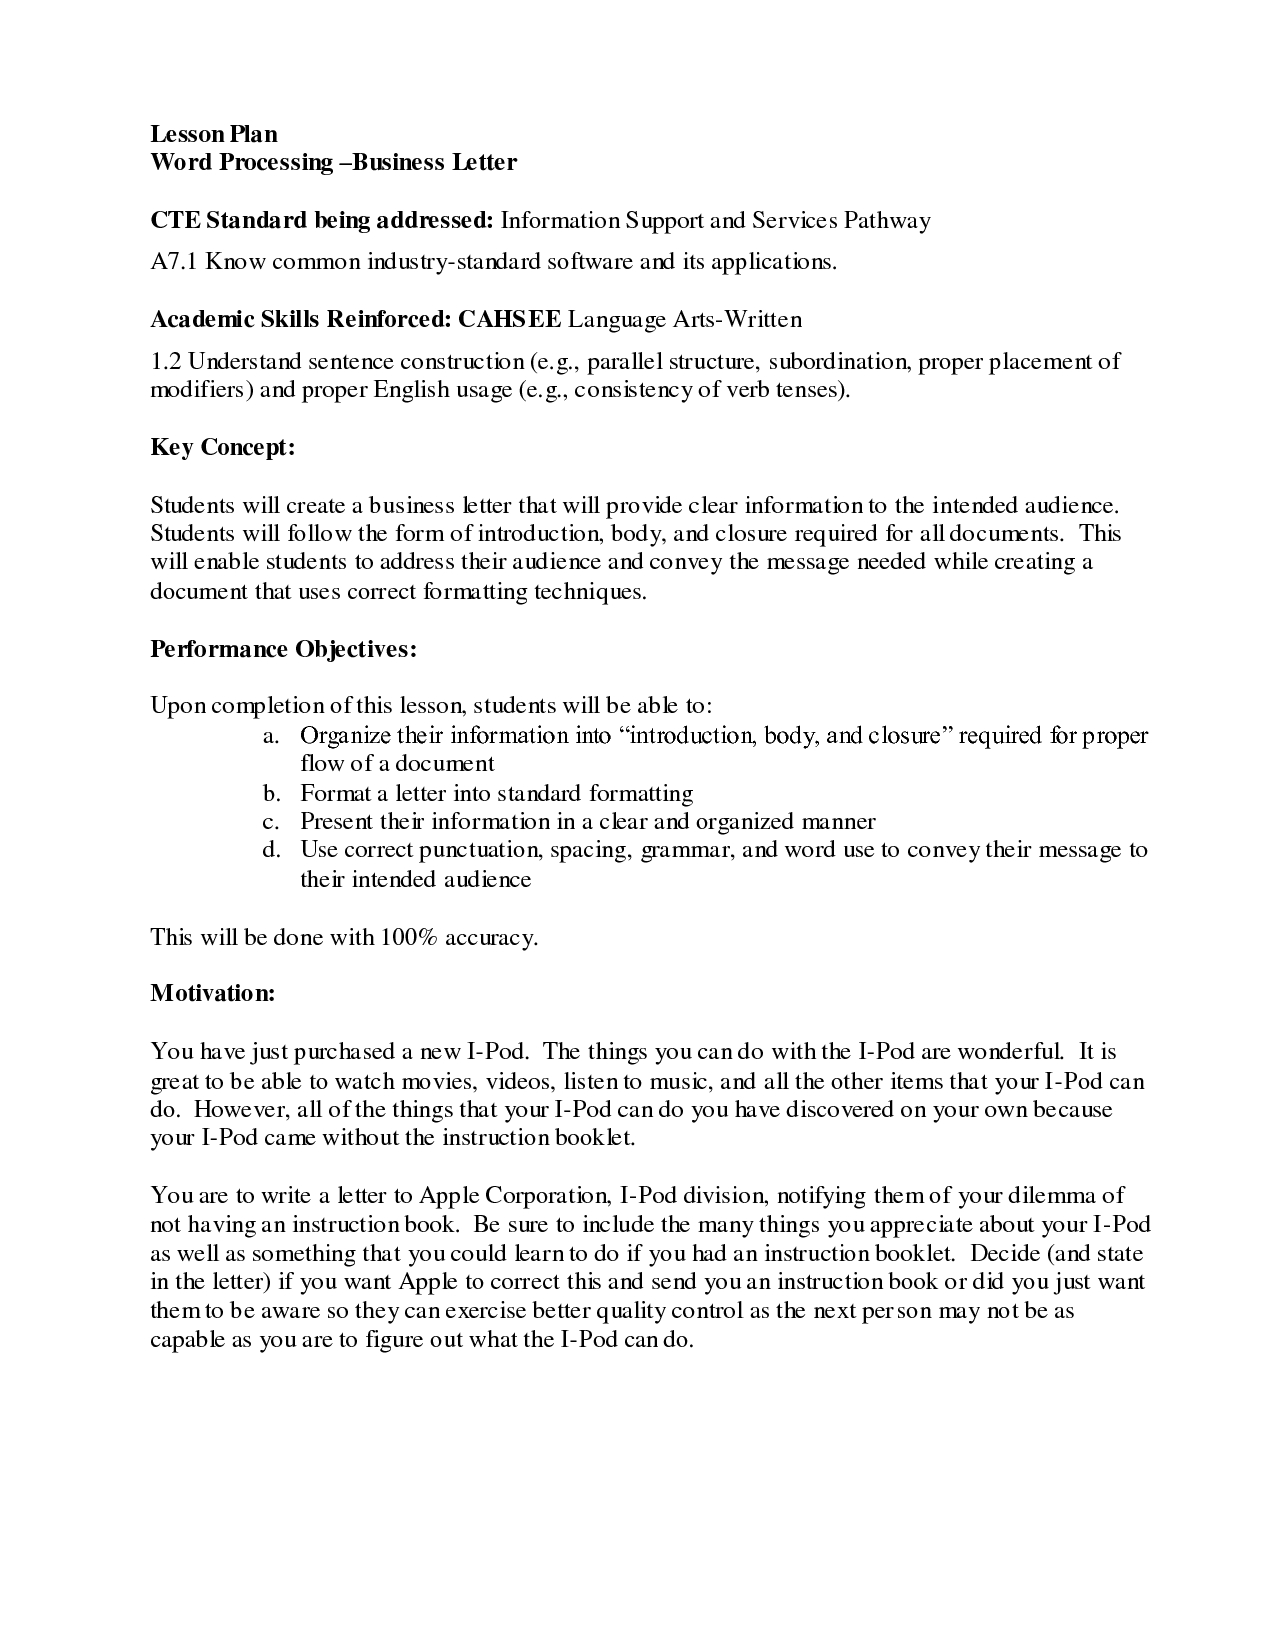 Consumer services essay analysis format paper